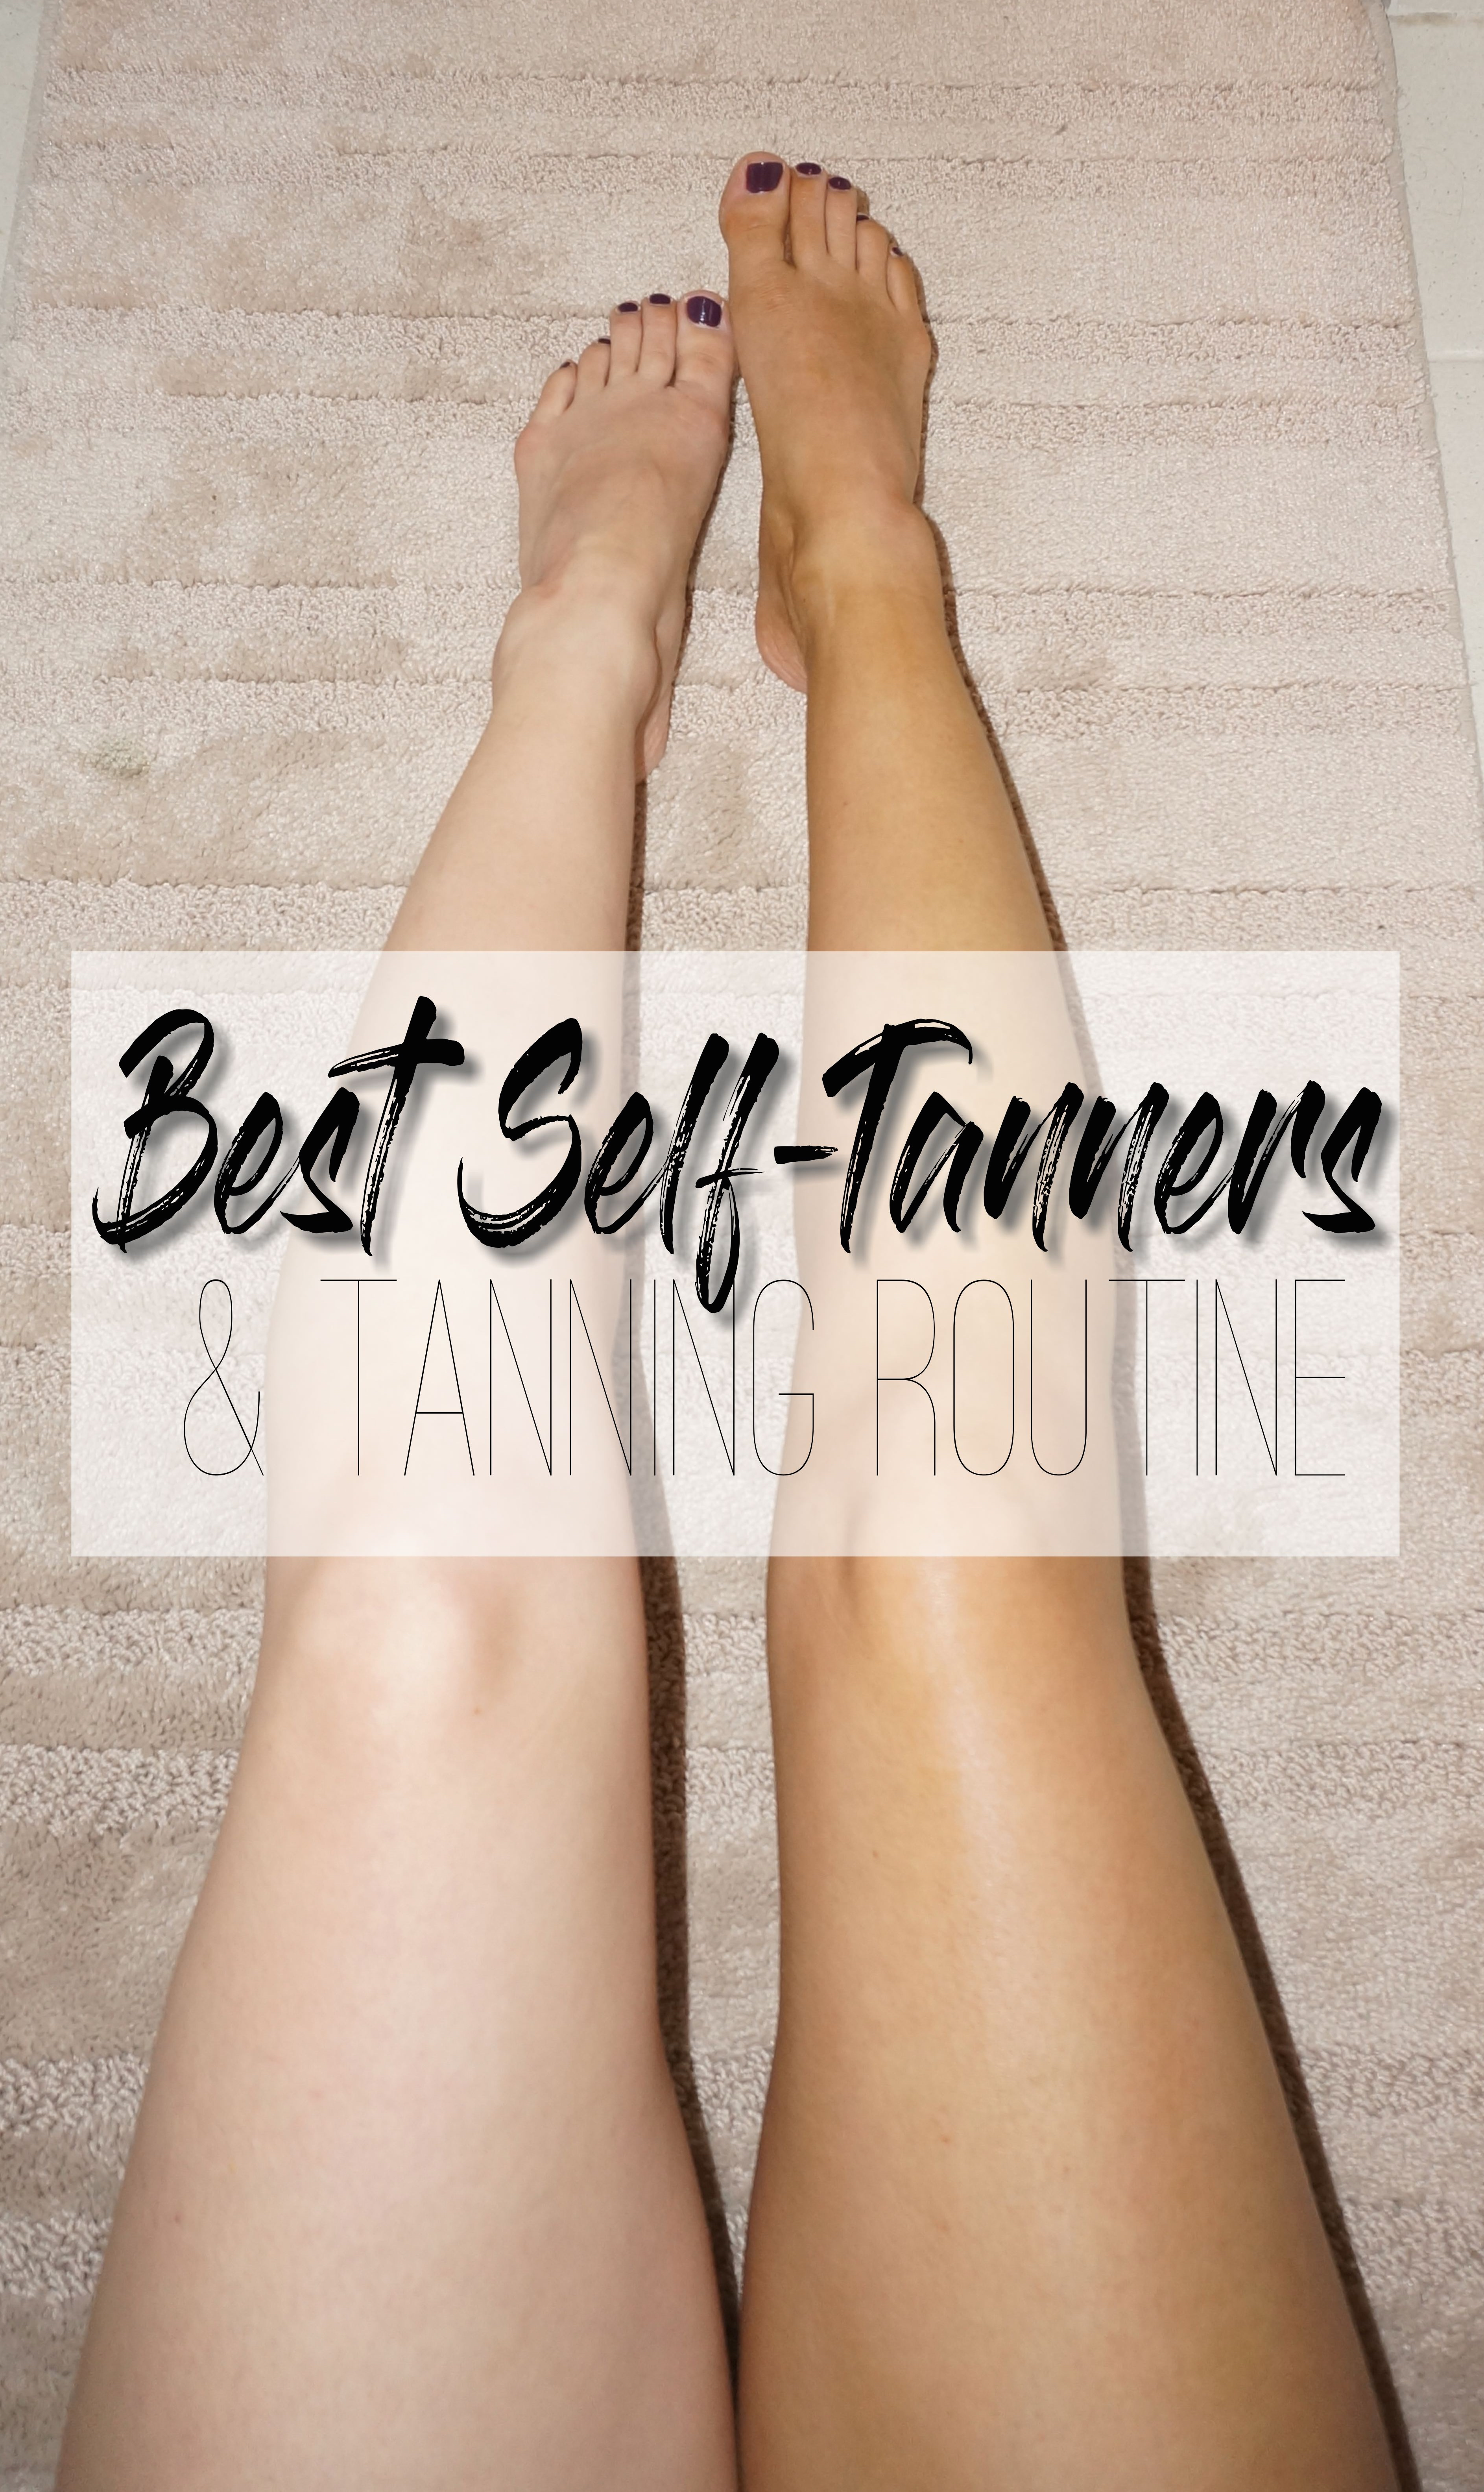 Best Self Tanners Routine